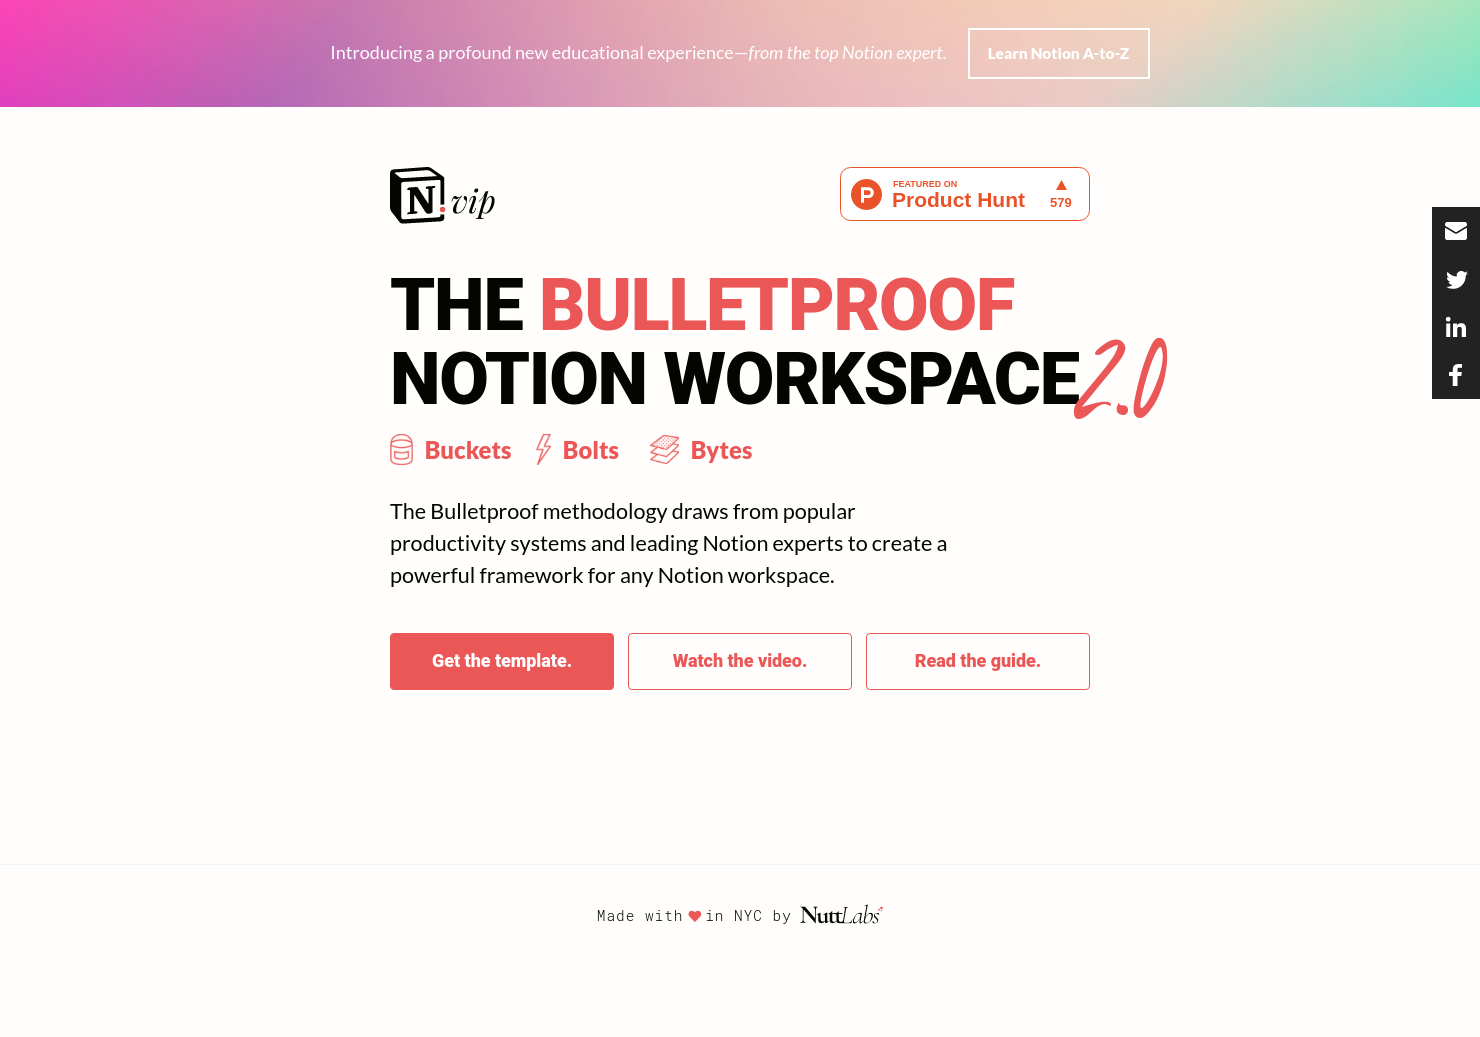 The Bulletproof Notion Workspace 2.0